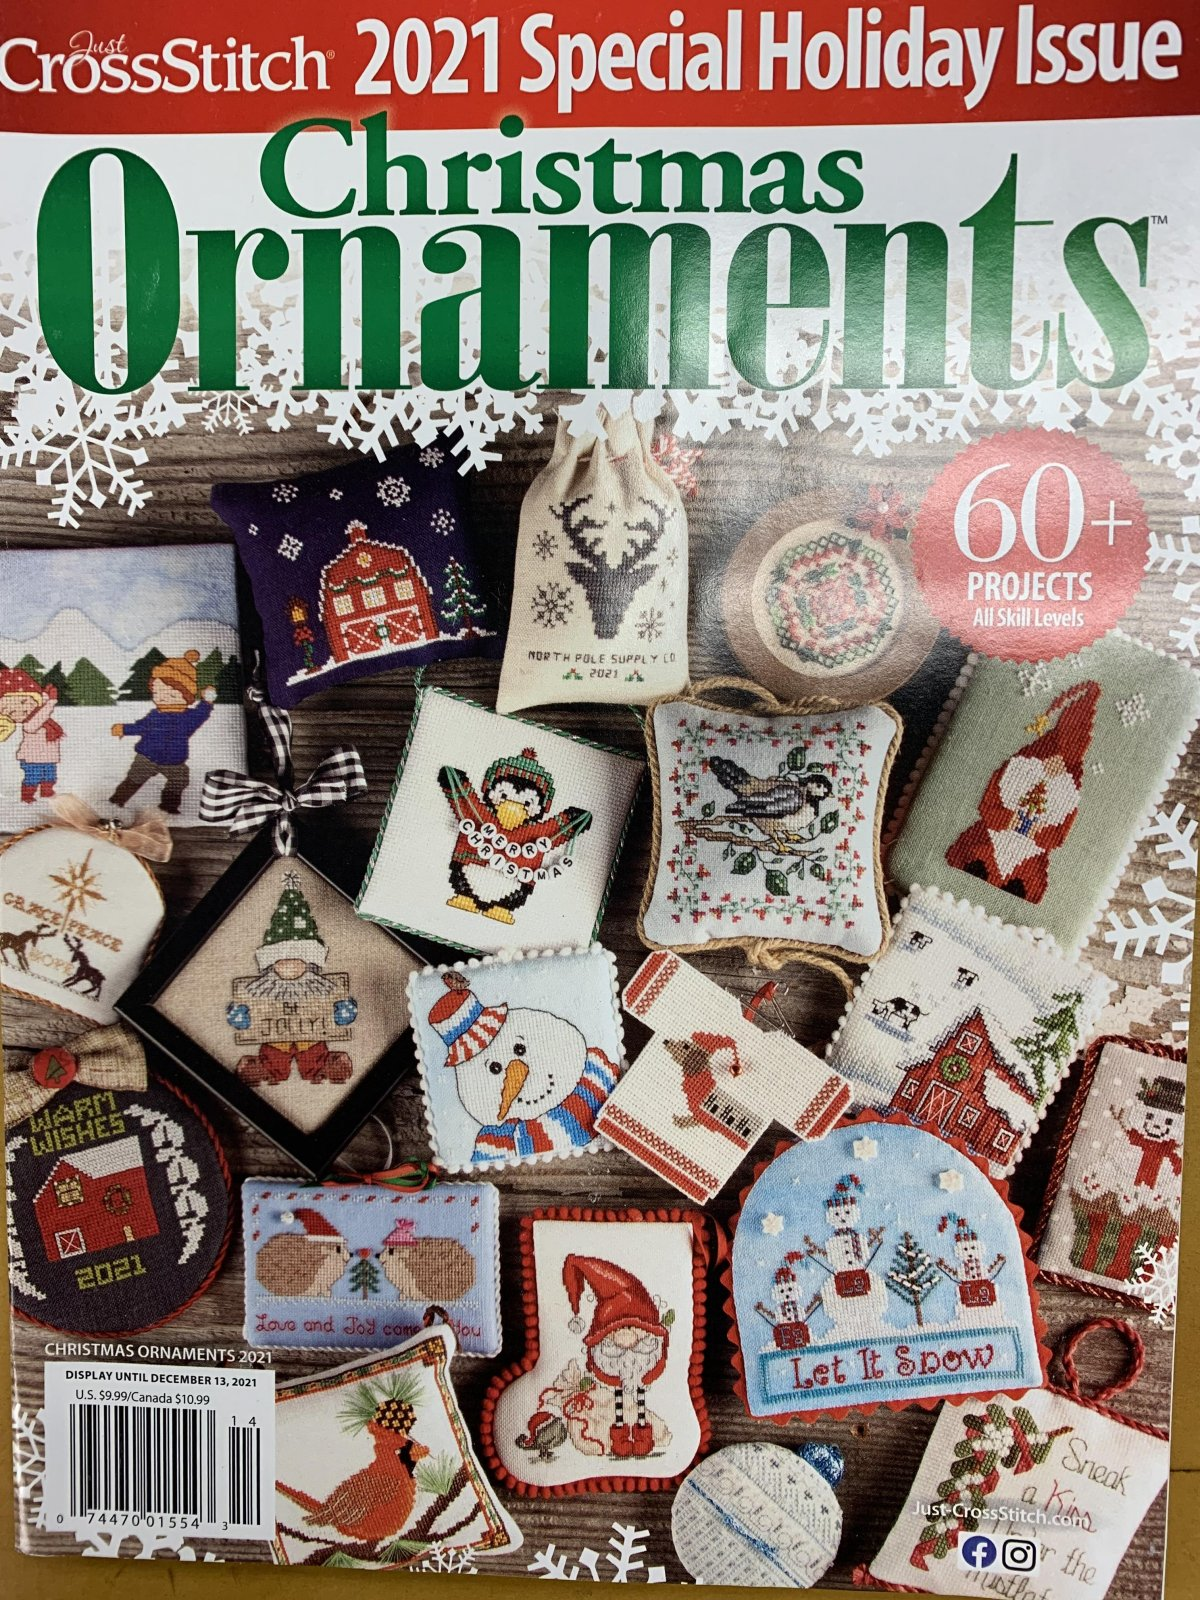 2021 Christmas Ornaments Issue - Just Cross Stitch